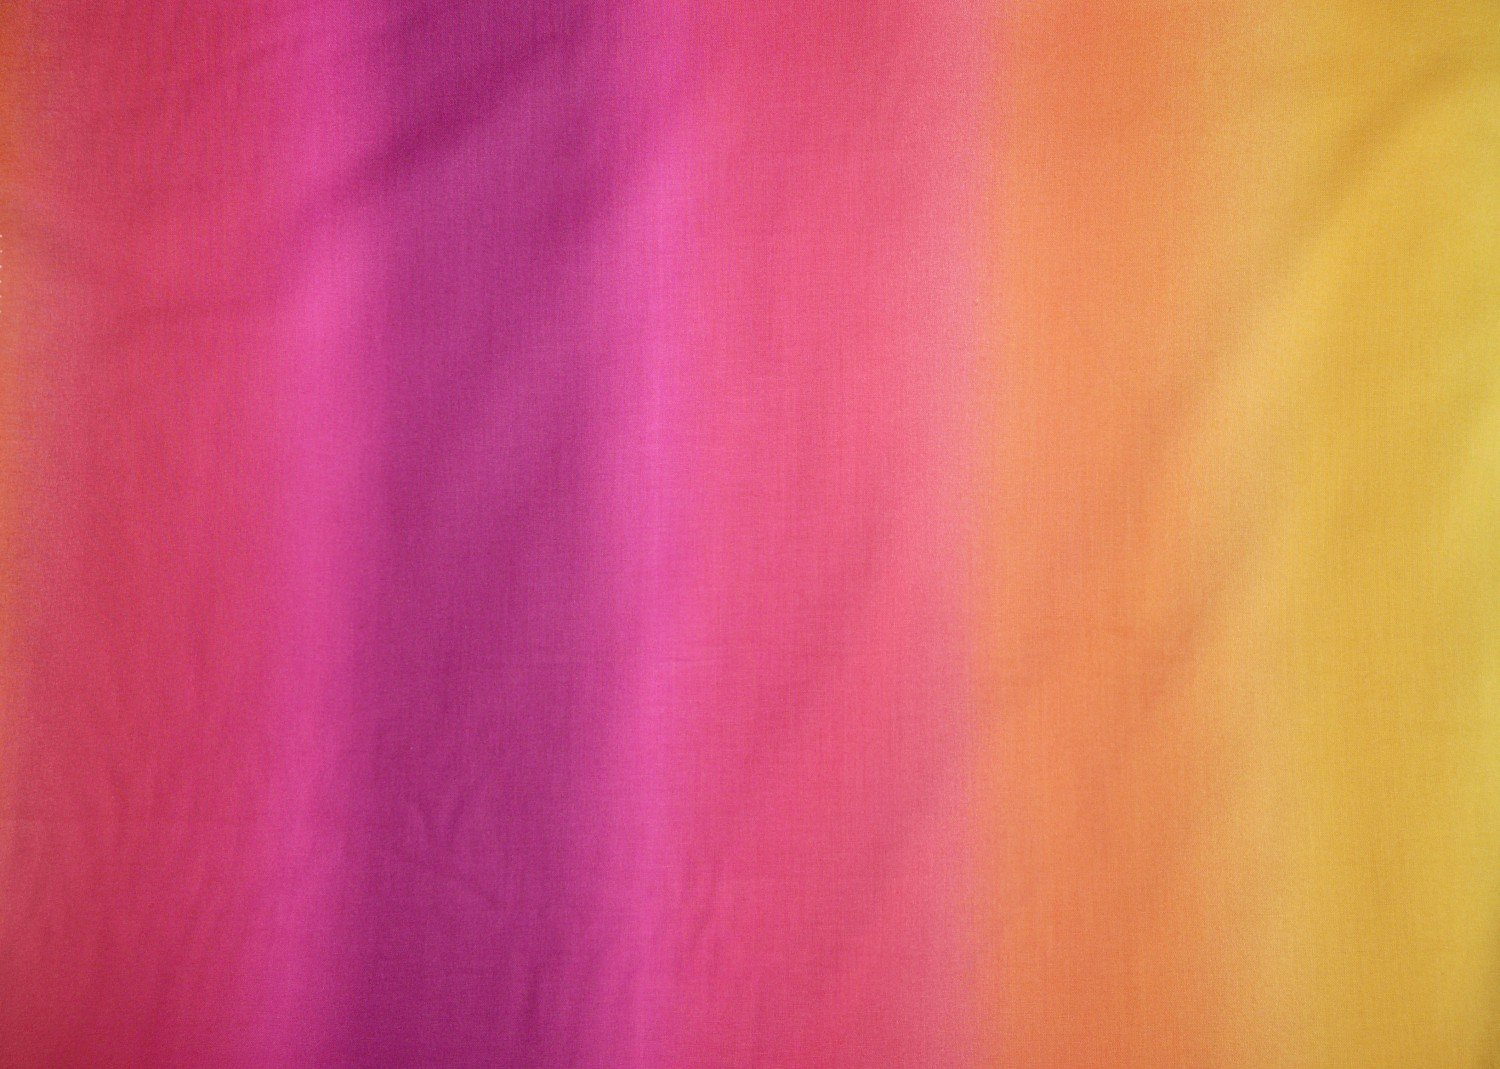 Ombre printed cotton fabric hot pink to orange bobbins for Printed cotton fabric